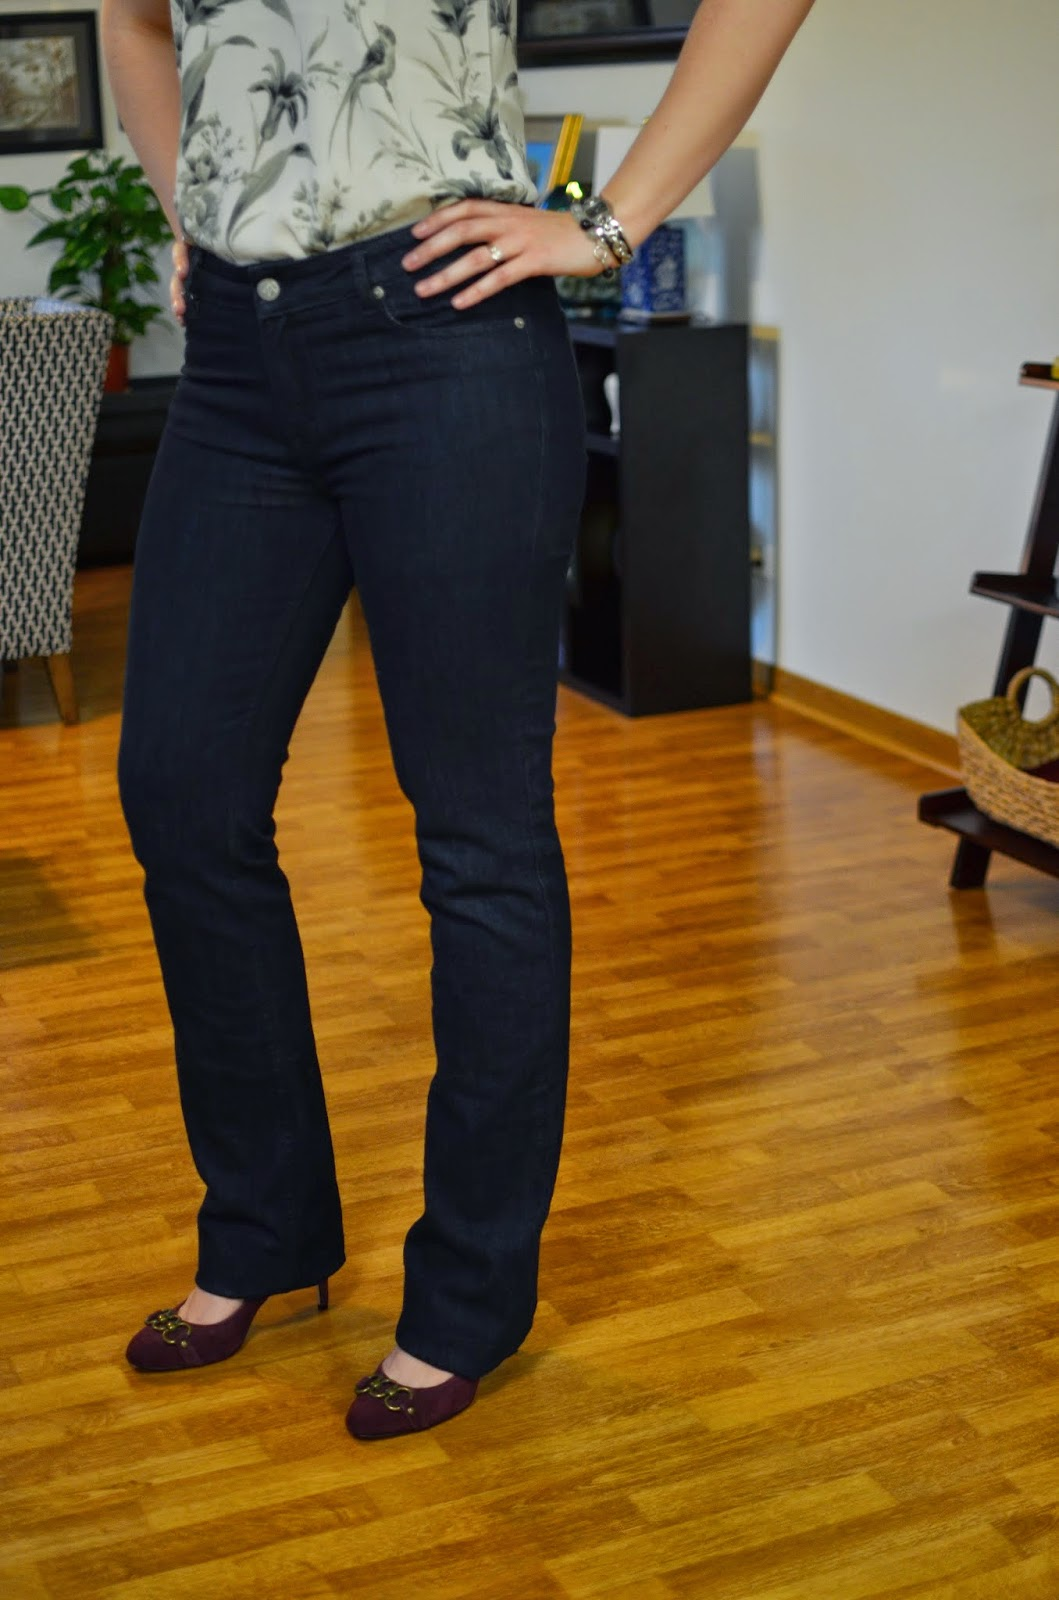 Extra-long tall jeans